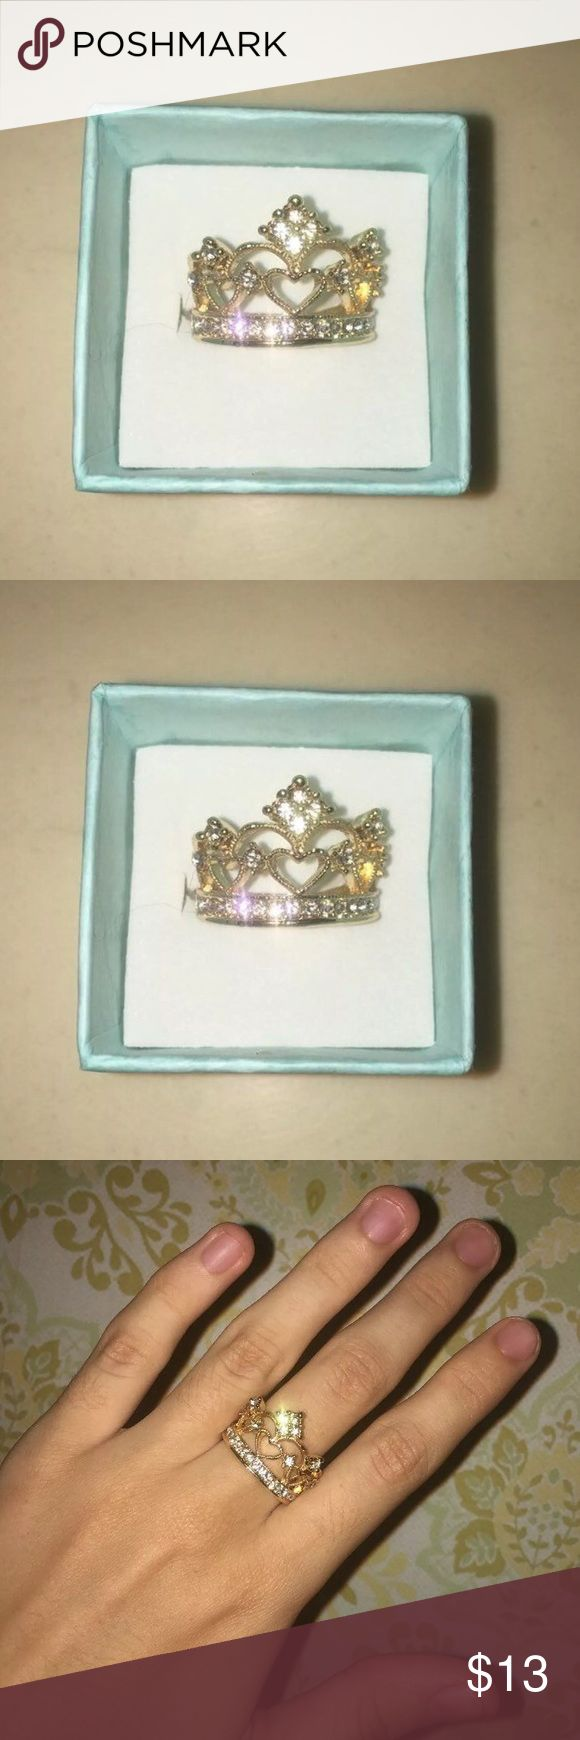 Princess Ring (Size 6) Gorgeous Golden Princess Ring!  Size: 6 Condition: New Materials: Gold and Mixed Metals Info: I acquire these in Mexico because the dollar to peso ratio is great! Most popular gol that comes from Mexico is 10K and I'm not 100% sure what the carat count for this Ring is.  I've had some of them in stock though for a month+ and they haven't changed color or tarnished at all! They do not turn your finger green/bruised looking.  I SHIP SAME DAY YOU PLACE YOUR ORDER or next…